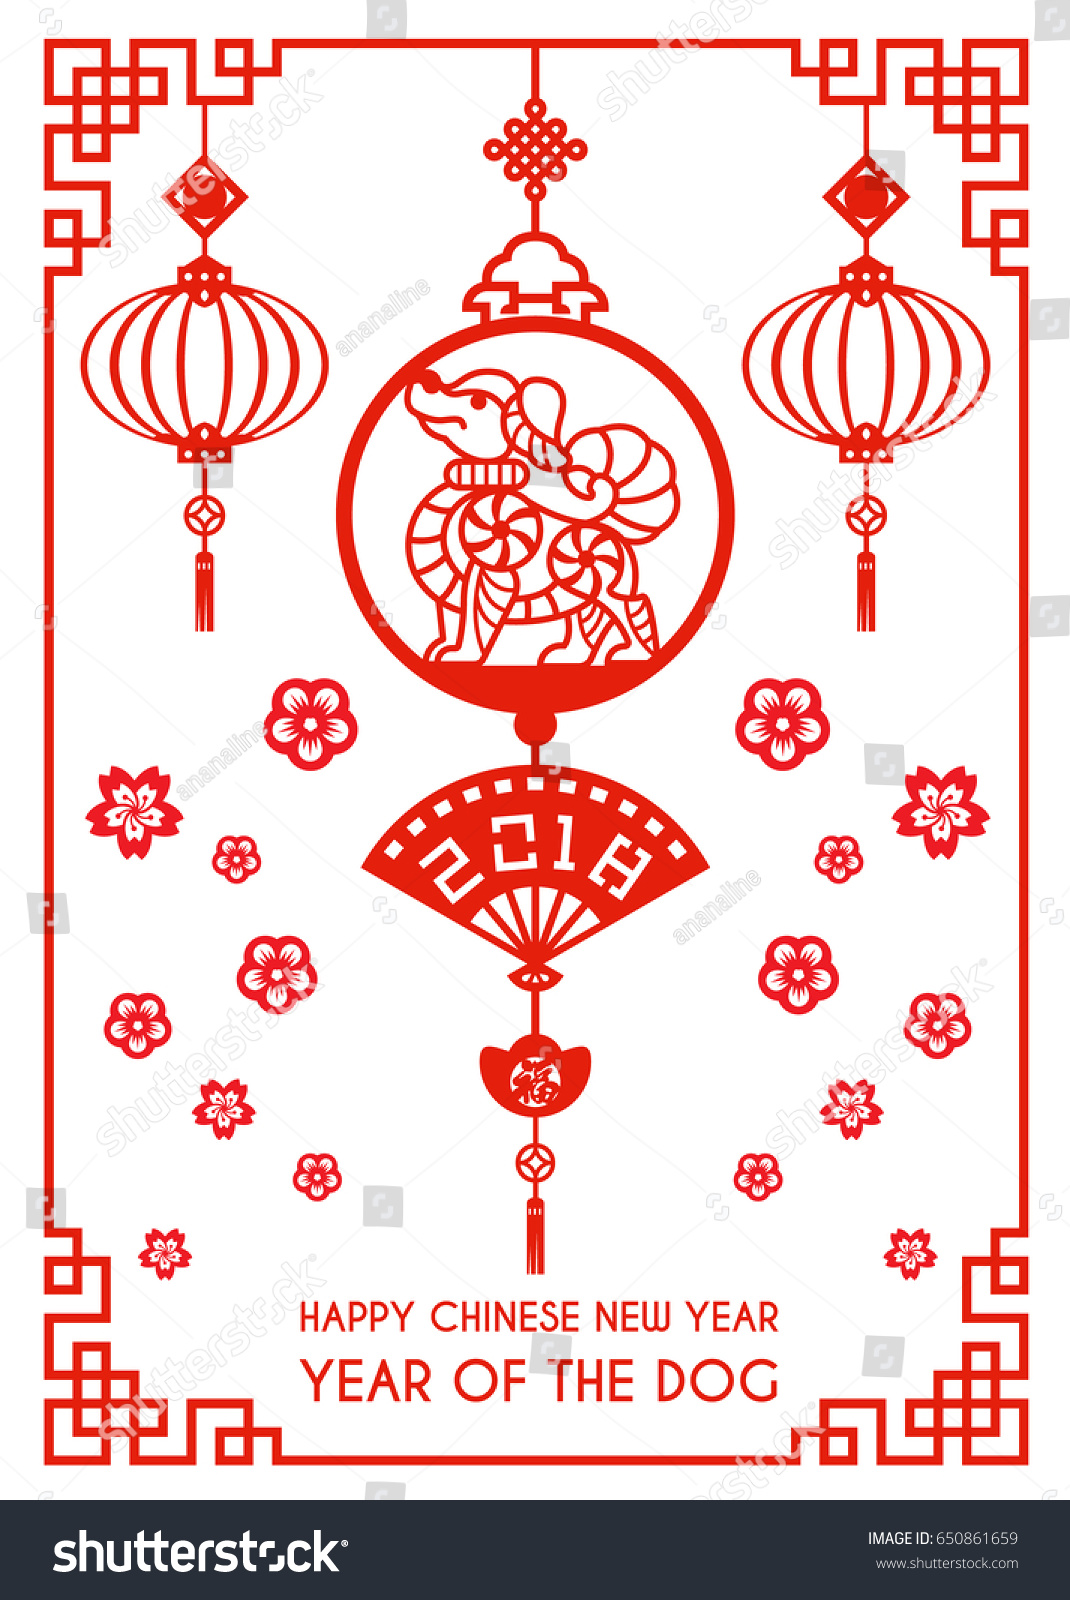 happy chinese new year 2018 card is red paper cut dog zodiac in circle and fan